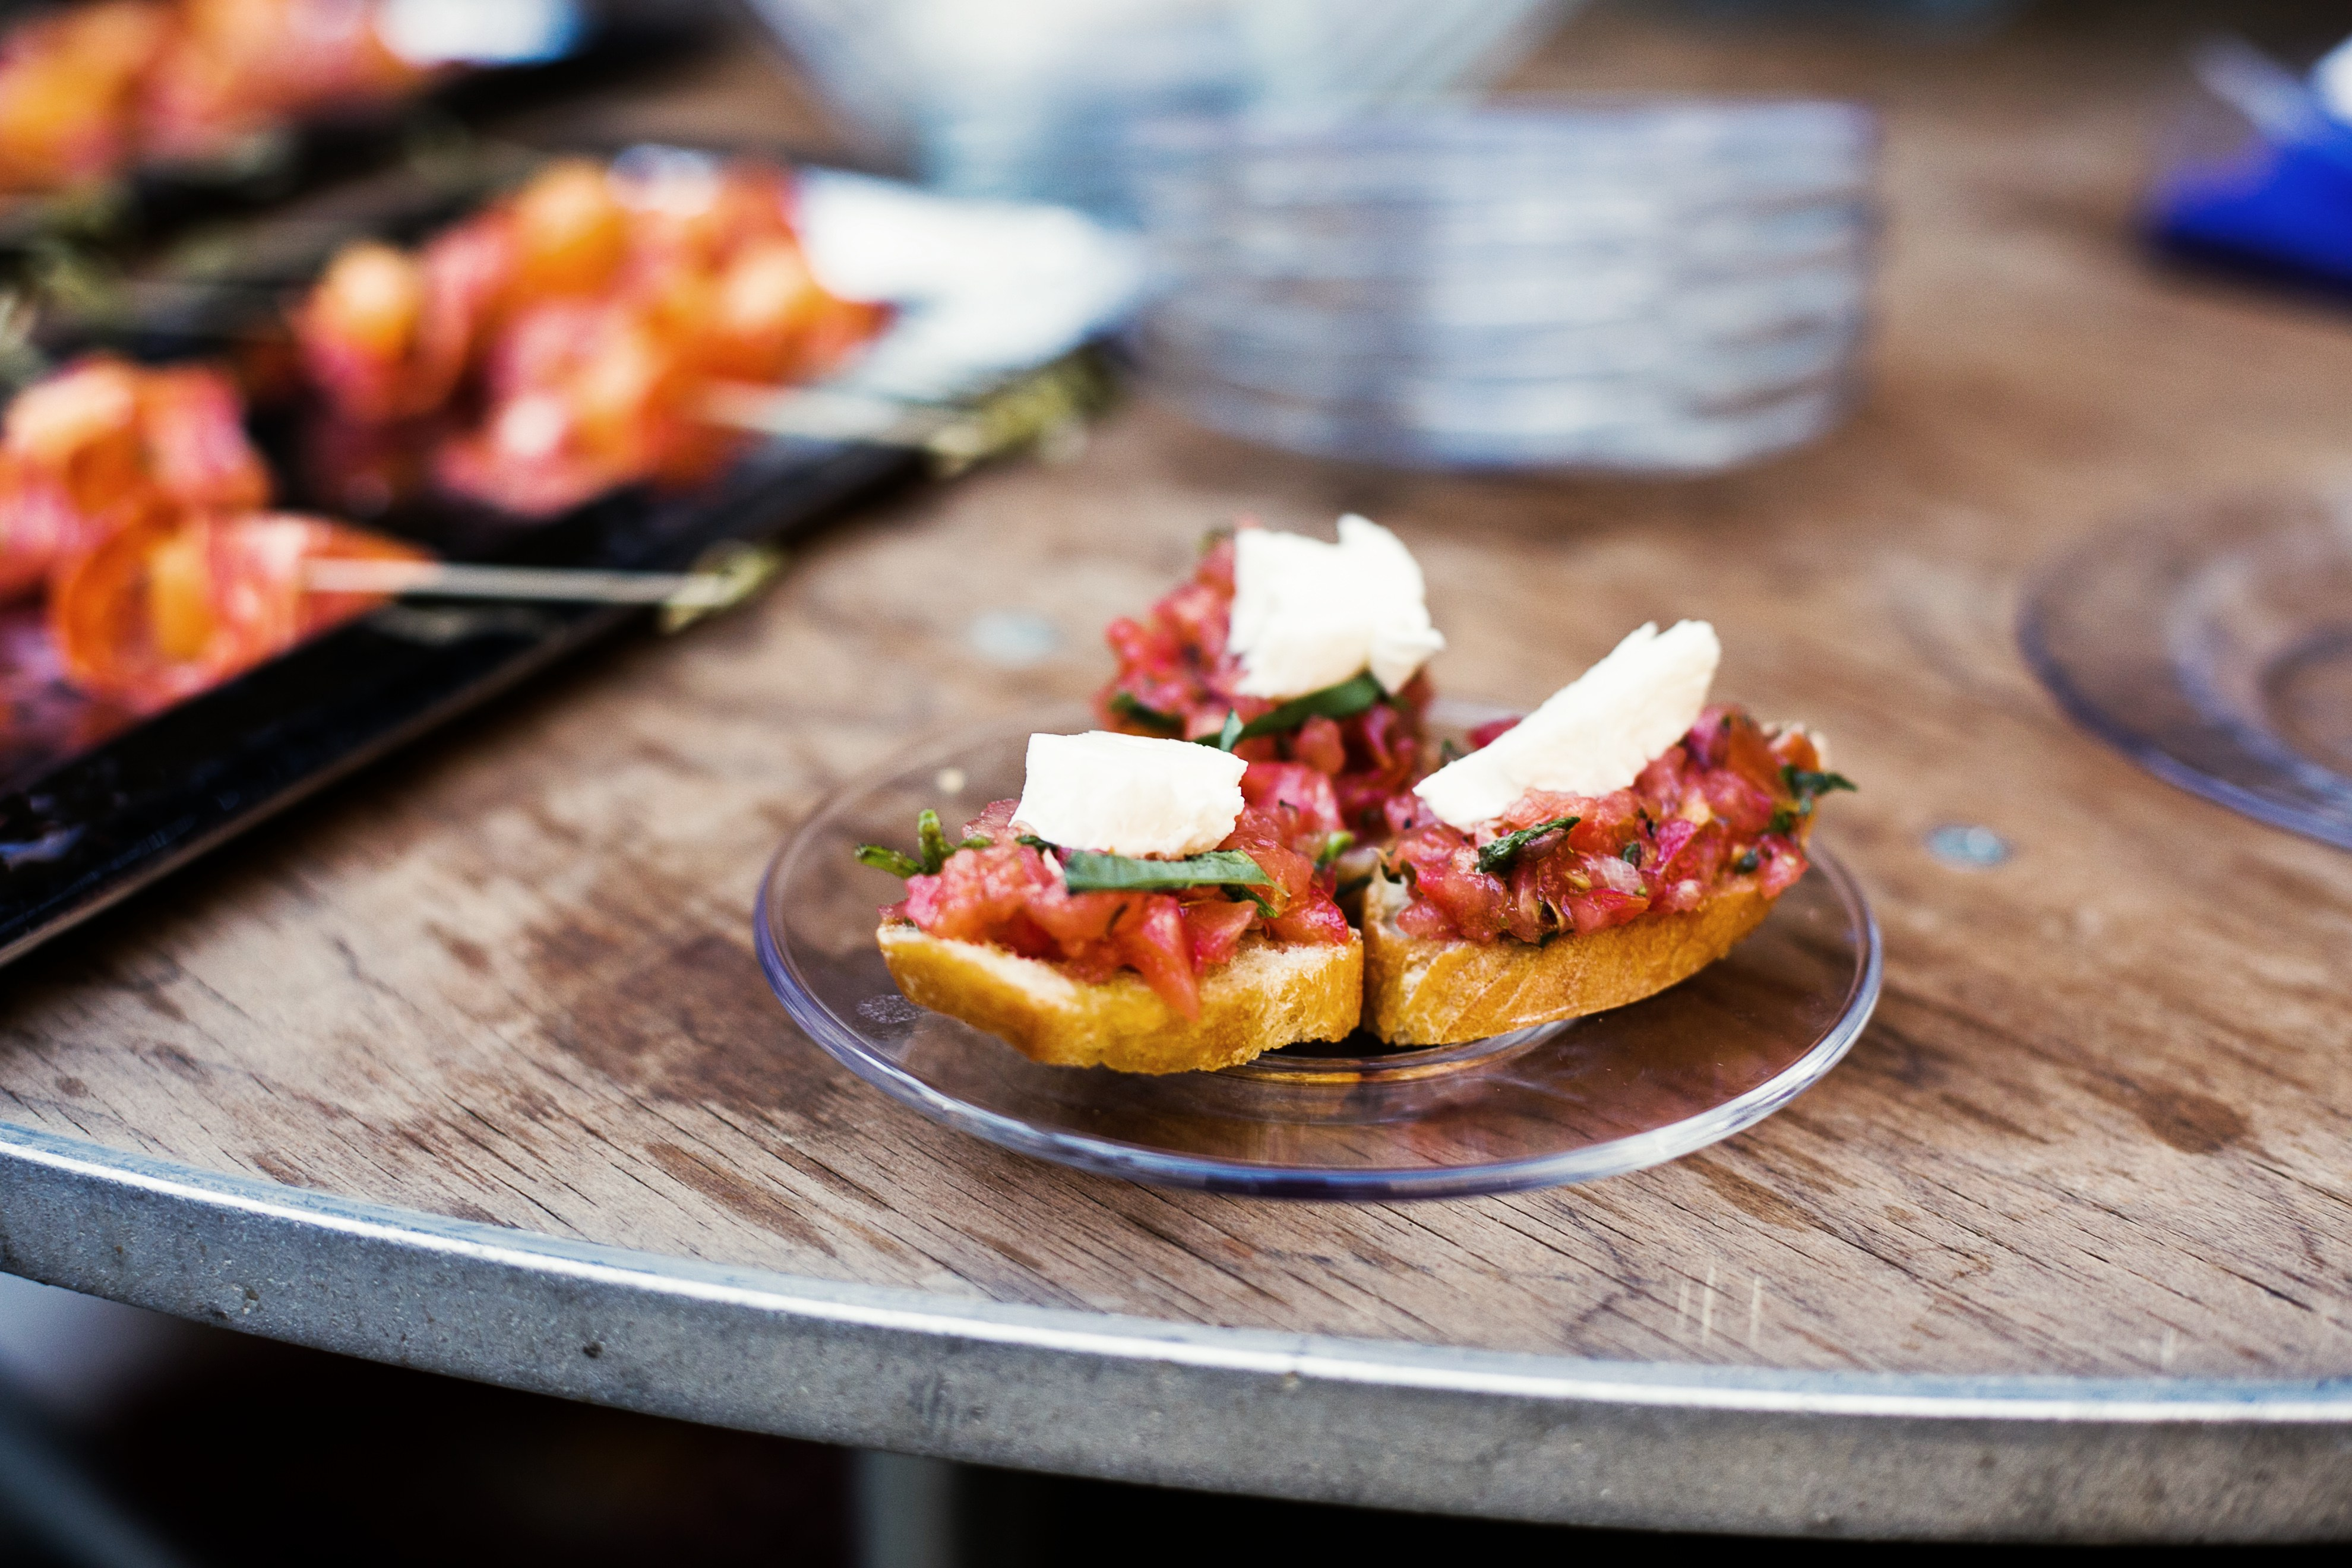 Sunstone Winery Bruschetta